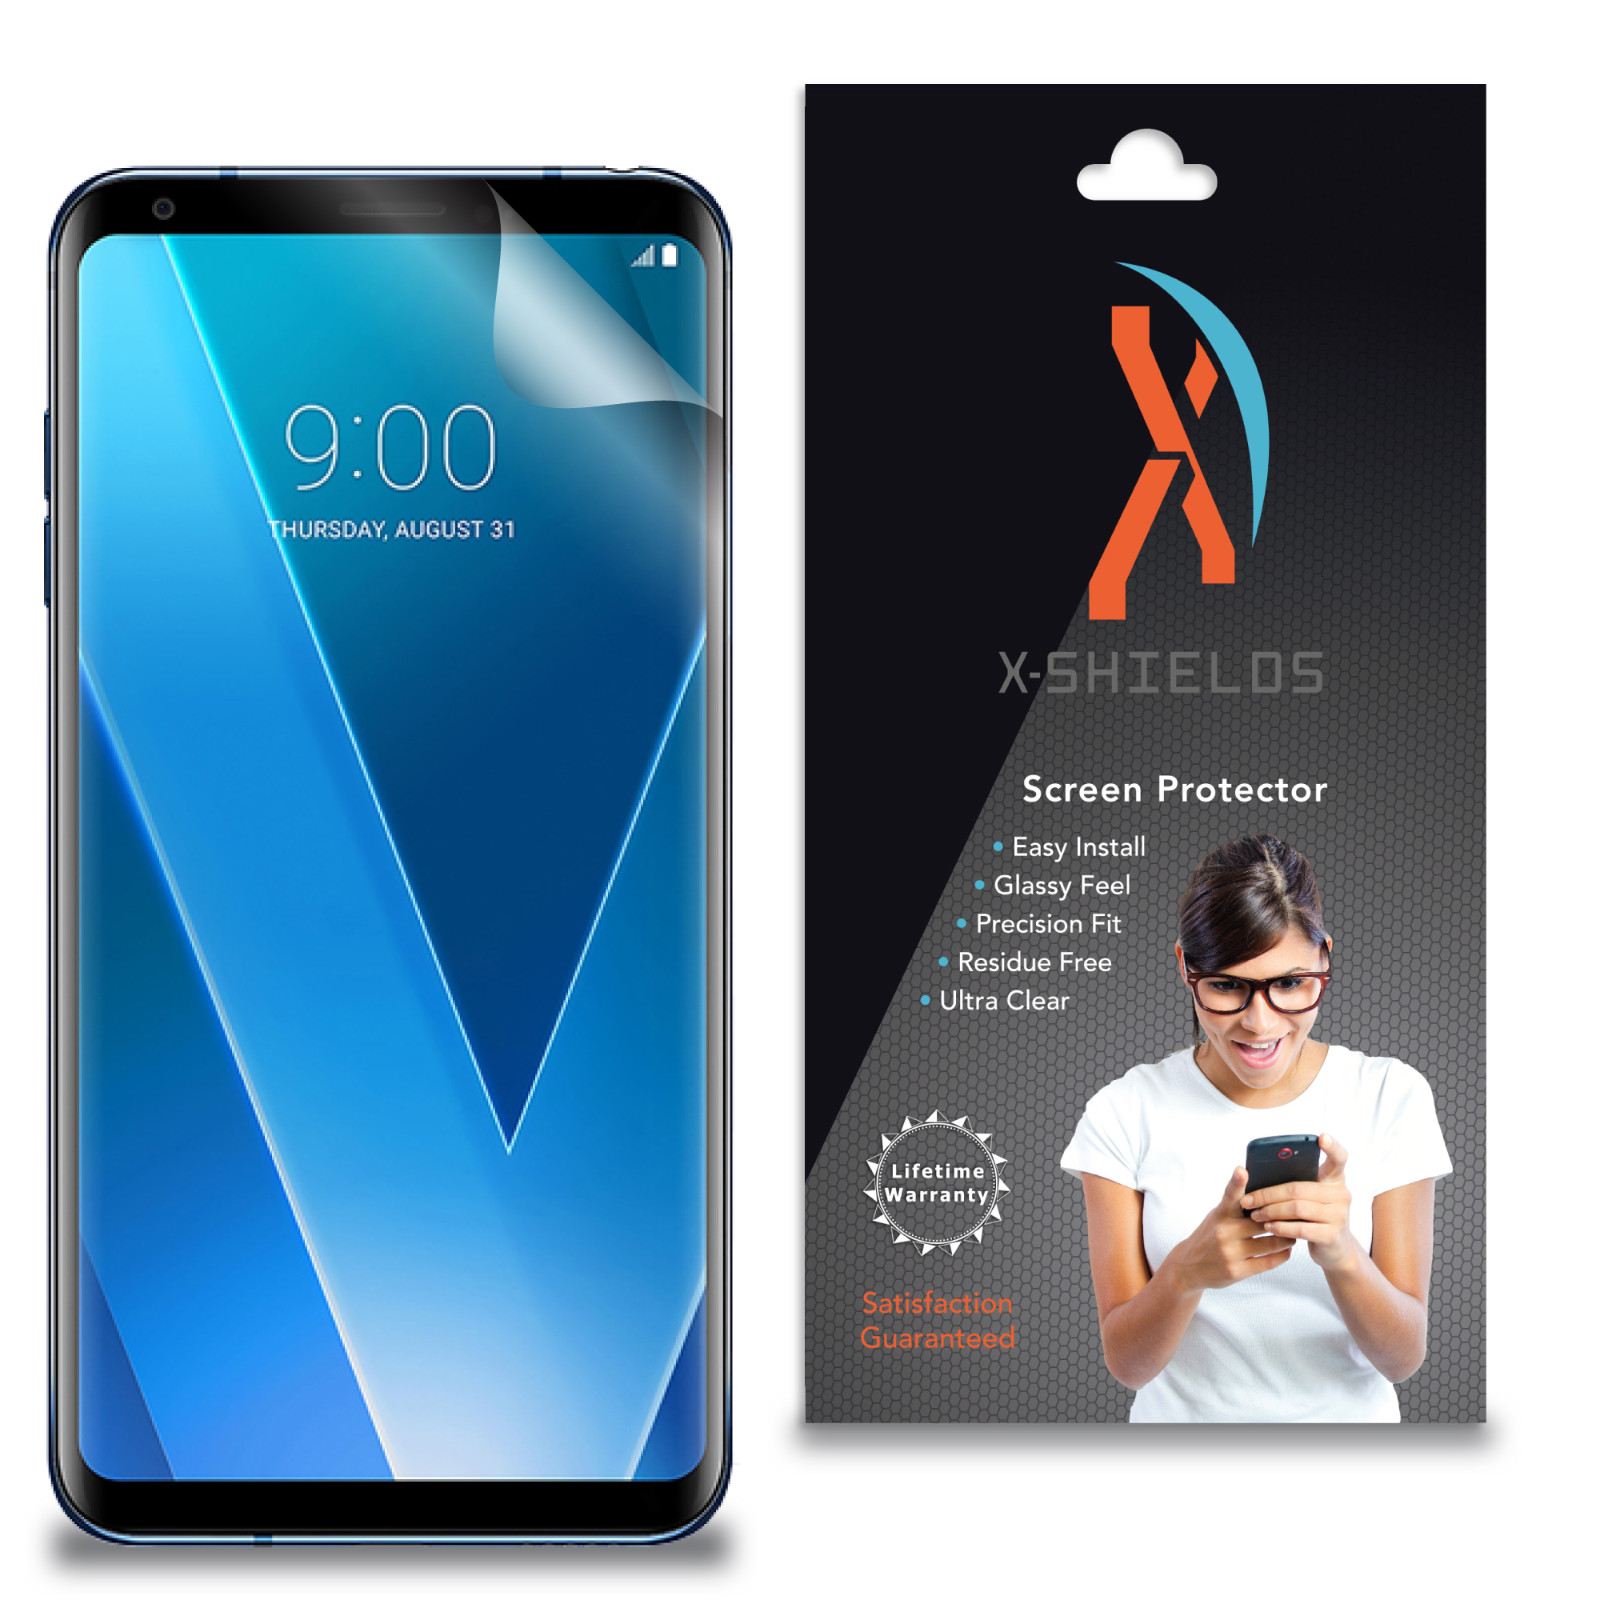 XShields© High Definition (HD+) Screen Protectors for LG V30+ (Maximum Clarity) Super Easy Installation [4-Pack] Lifetime Warranty, Advanced Touchscreen Accuracy